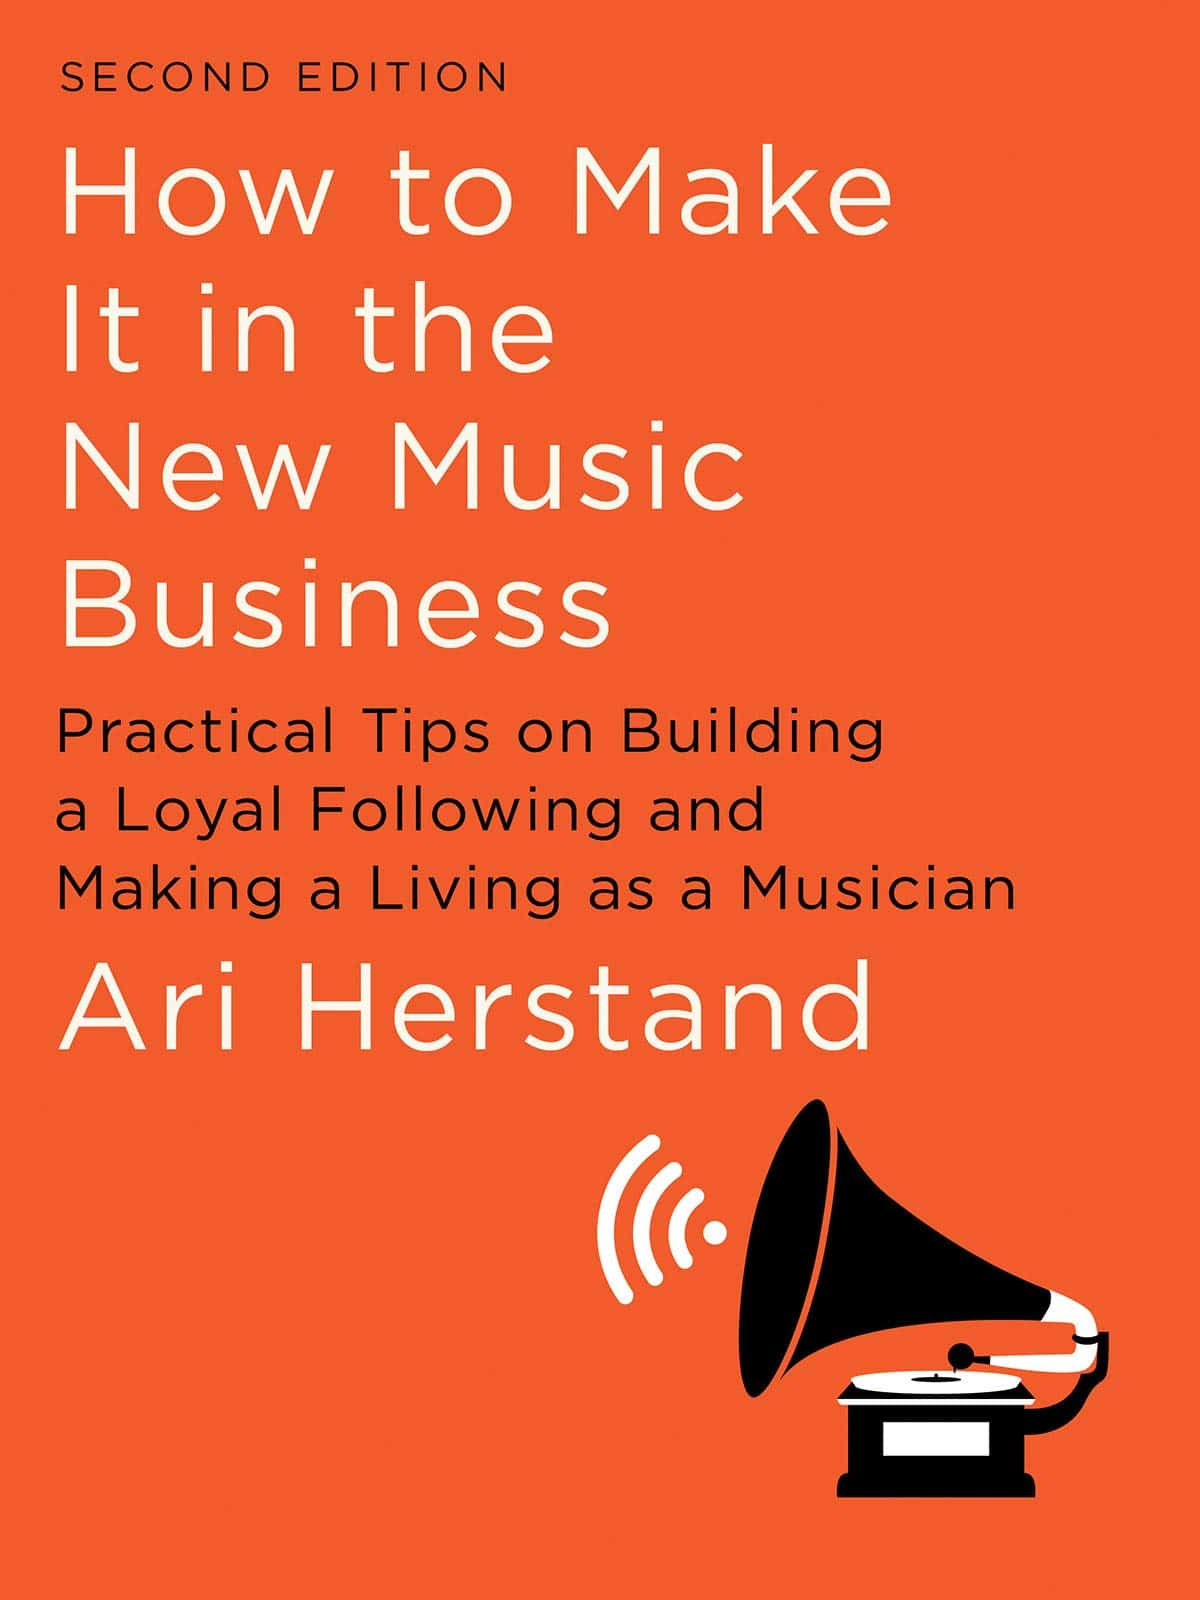 How to Make it in the New Music Business - Book Review